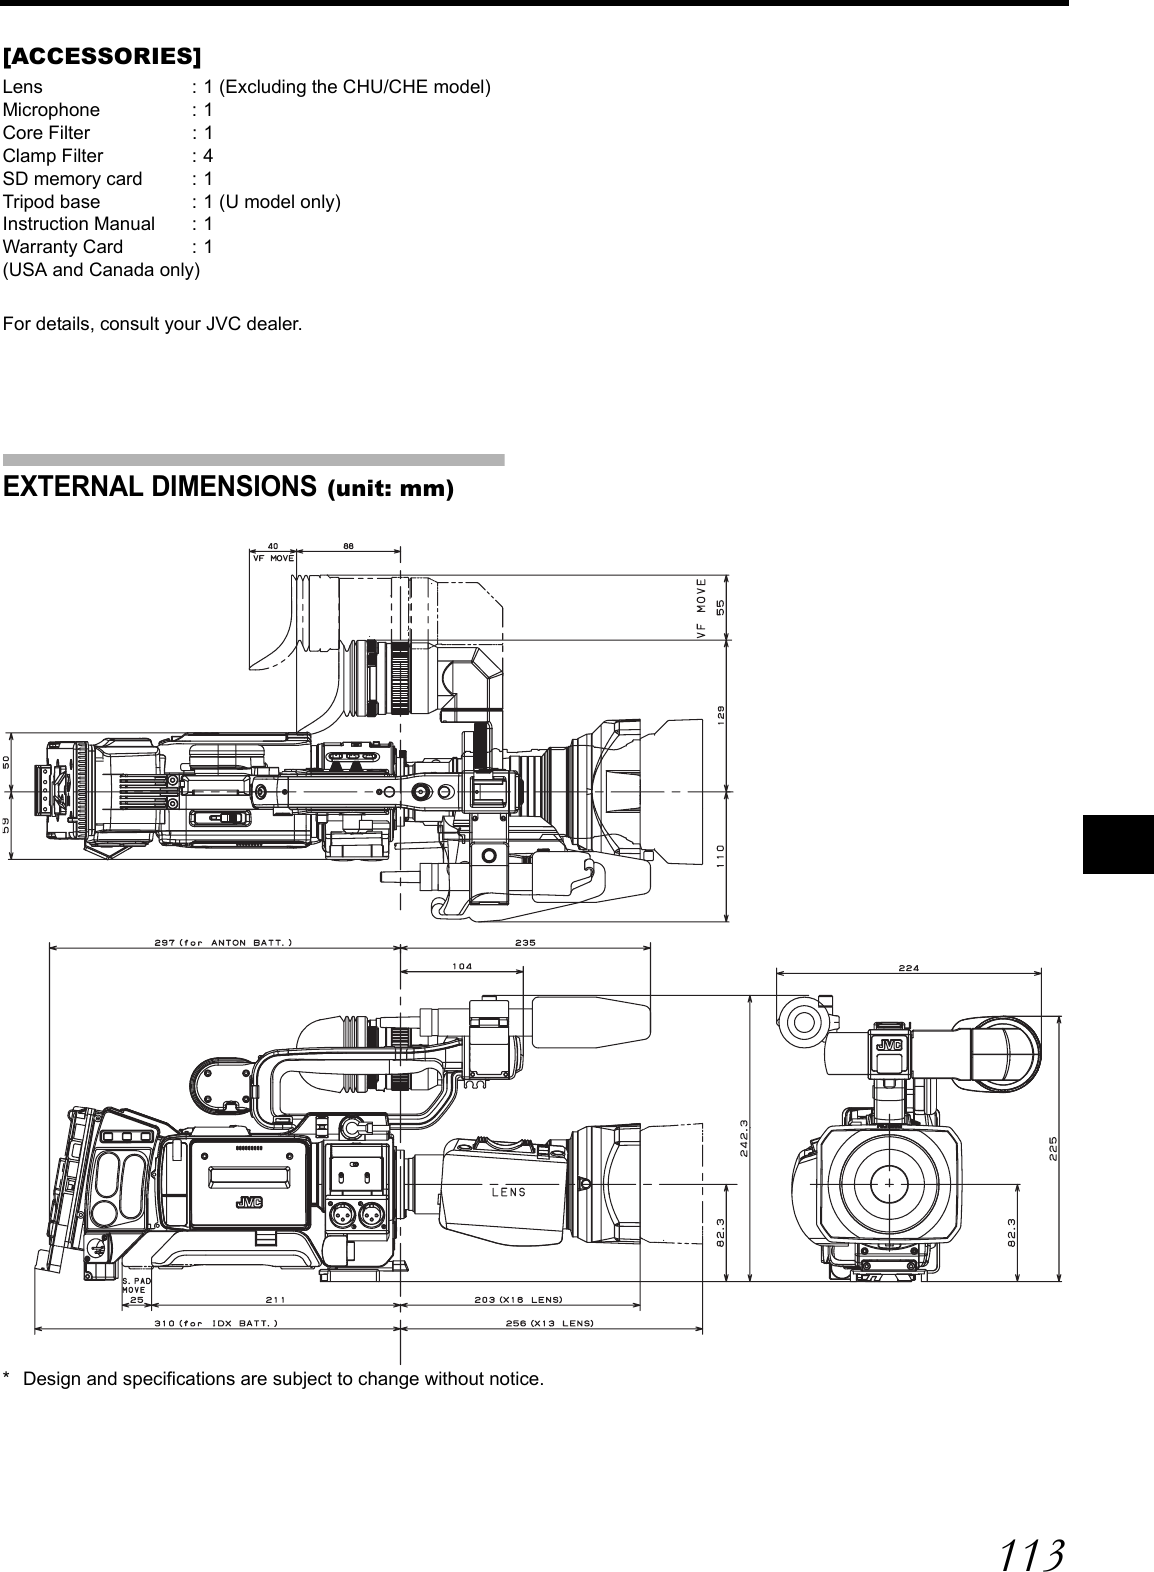 Cker S 6500 Onan Generator Wiring Diagram. . Wiring Diagram Onan Generator Wiring Diagram Manual on